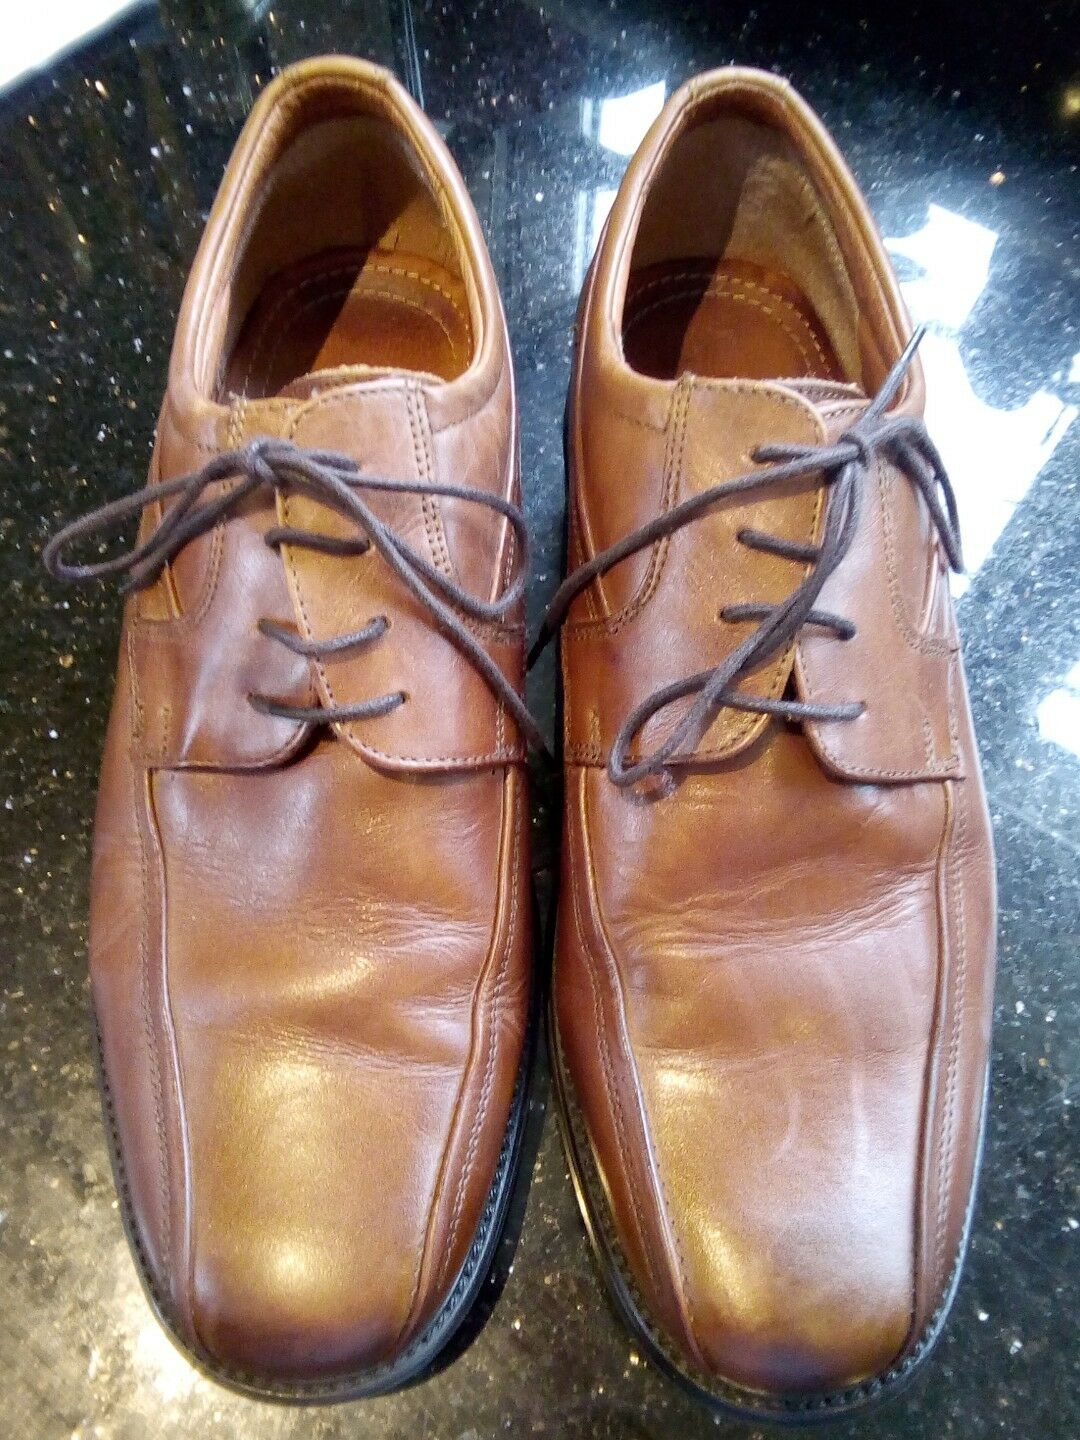 Gents men's jones the bootmaker eu 44 gents tan leather shoes